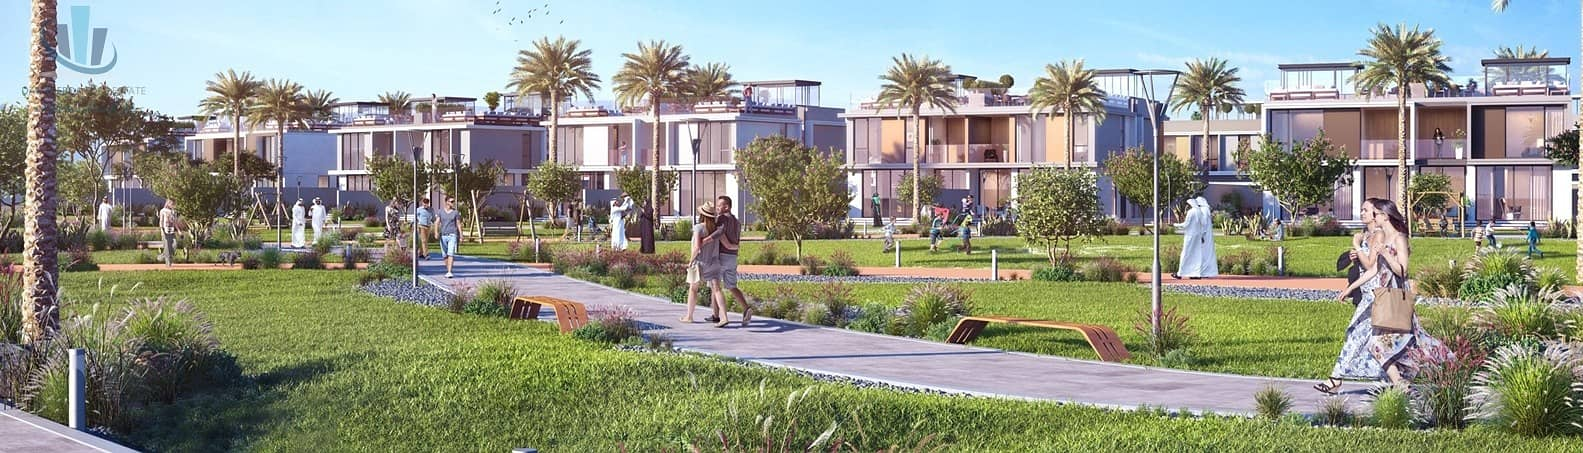 VillaGolf Grove 4Br MBR 1% Monthly Installments for 5 Years